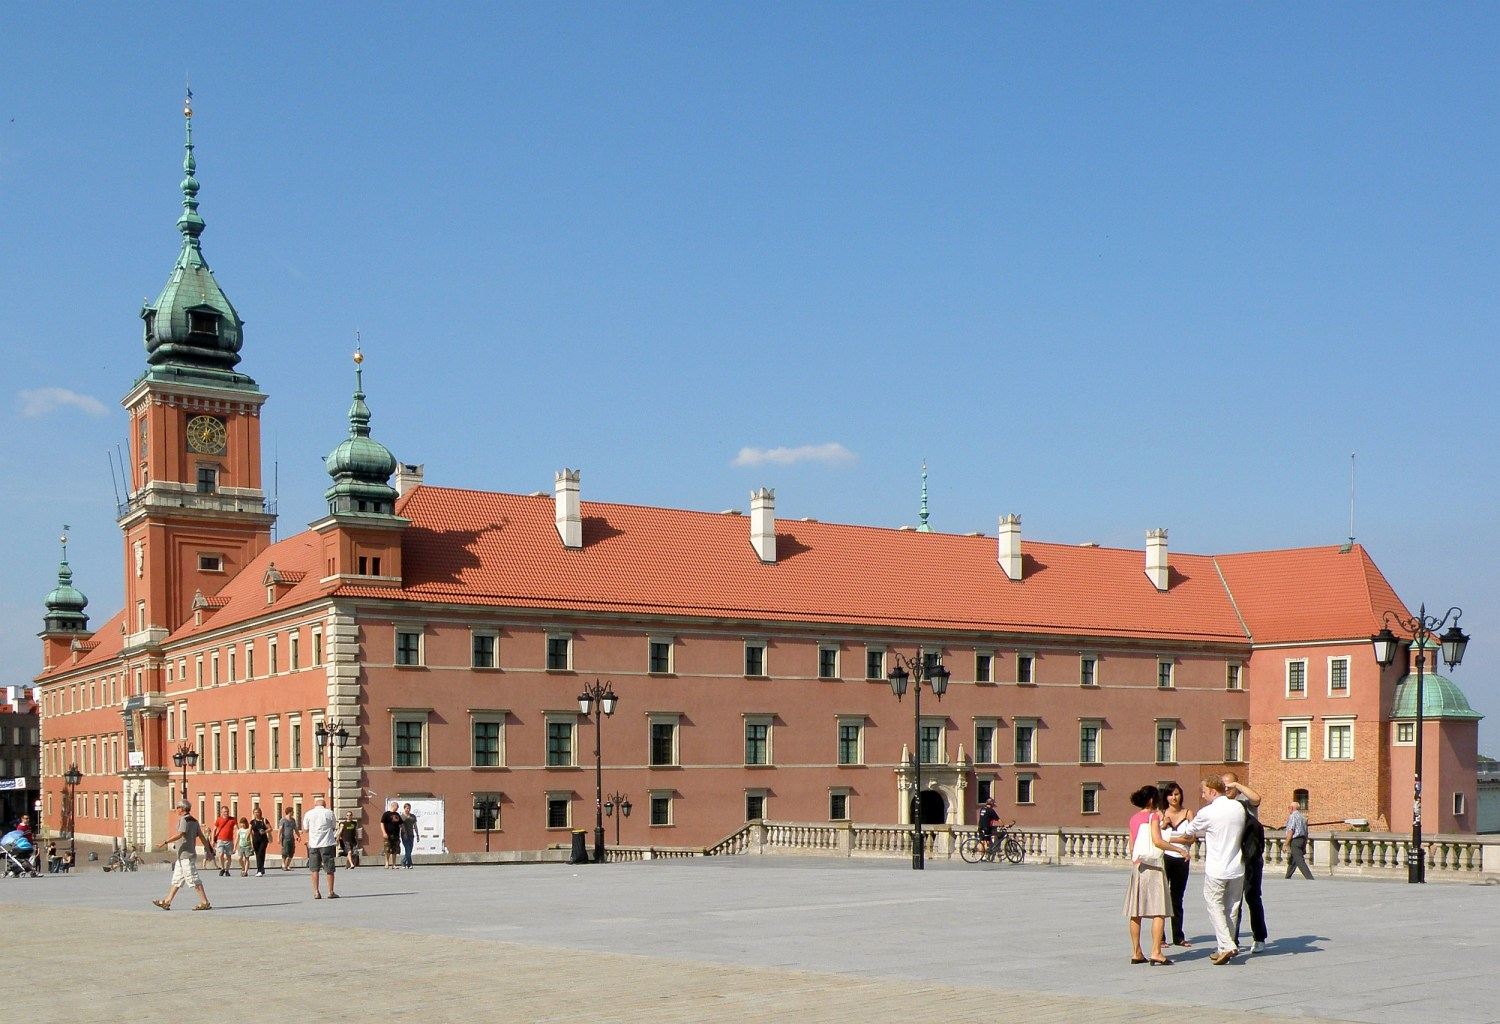 The Royal Castle in Warsaw, source: wikipedia